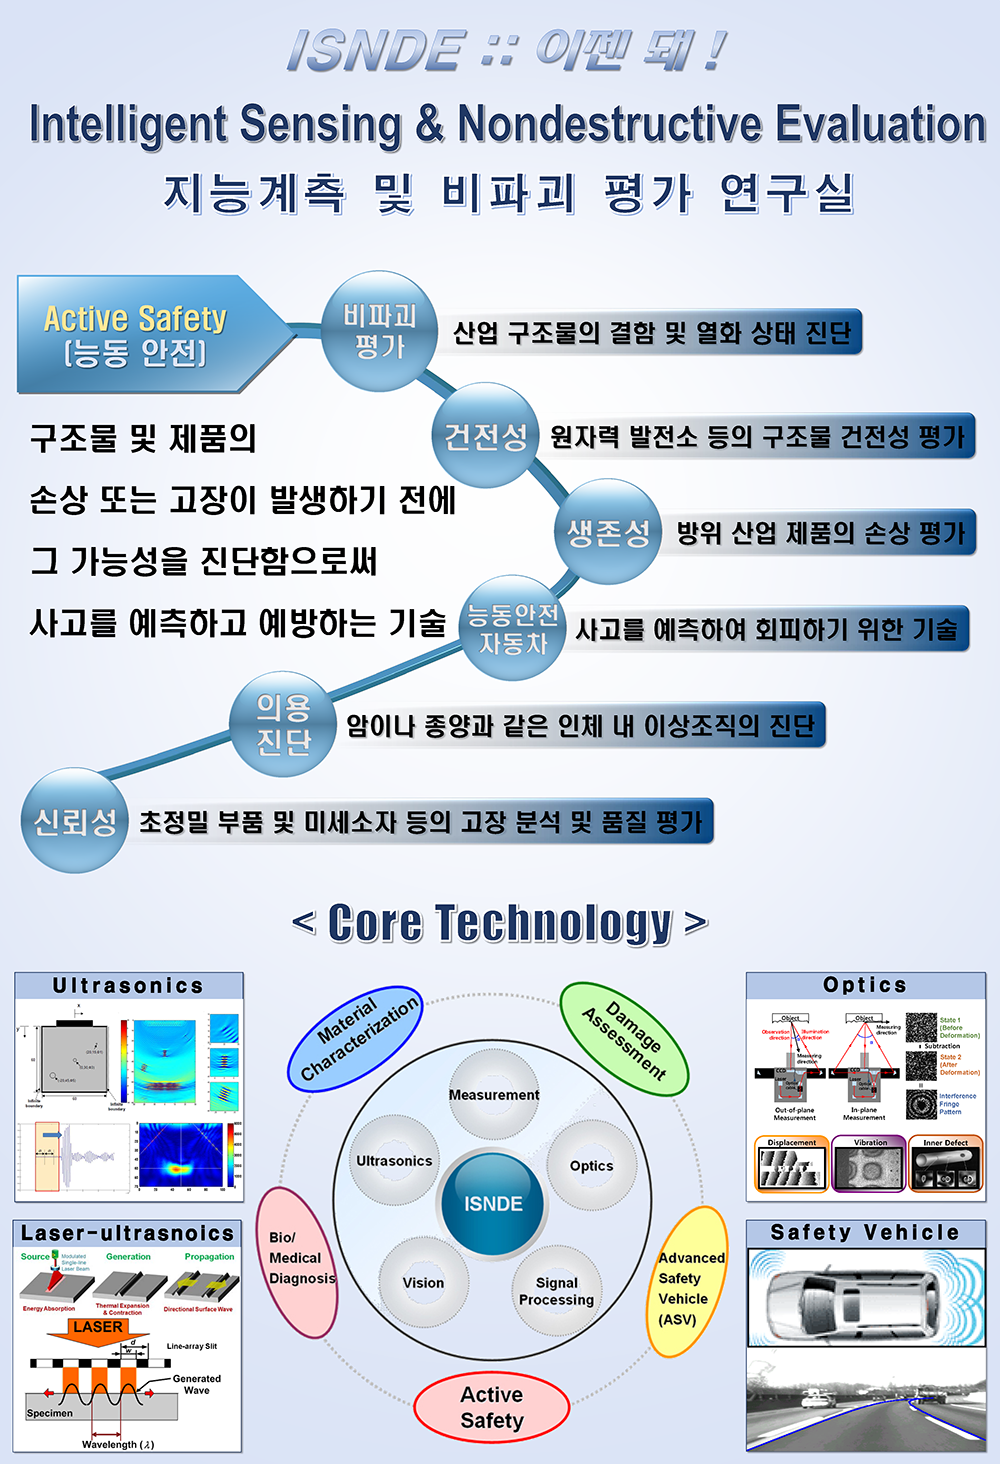 ISNDE_Introduction_Poster_2013_1.png